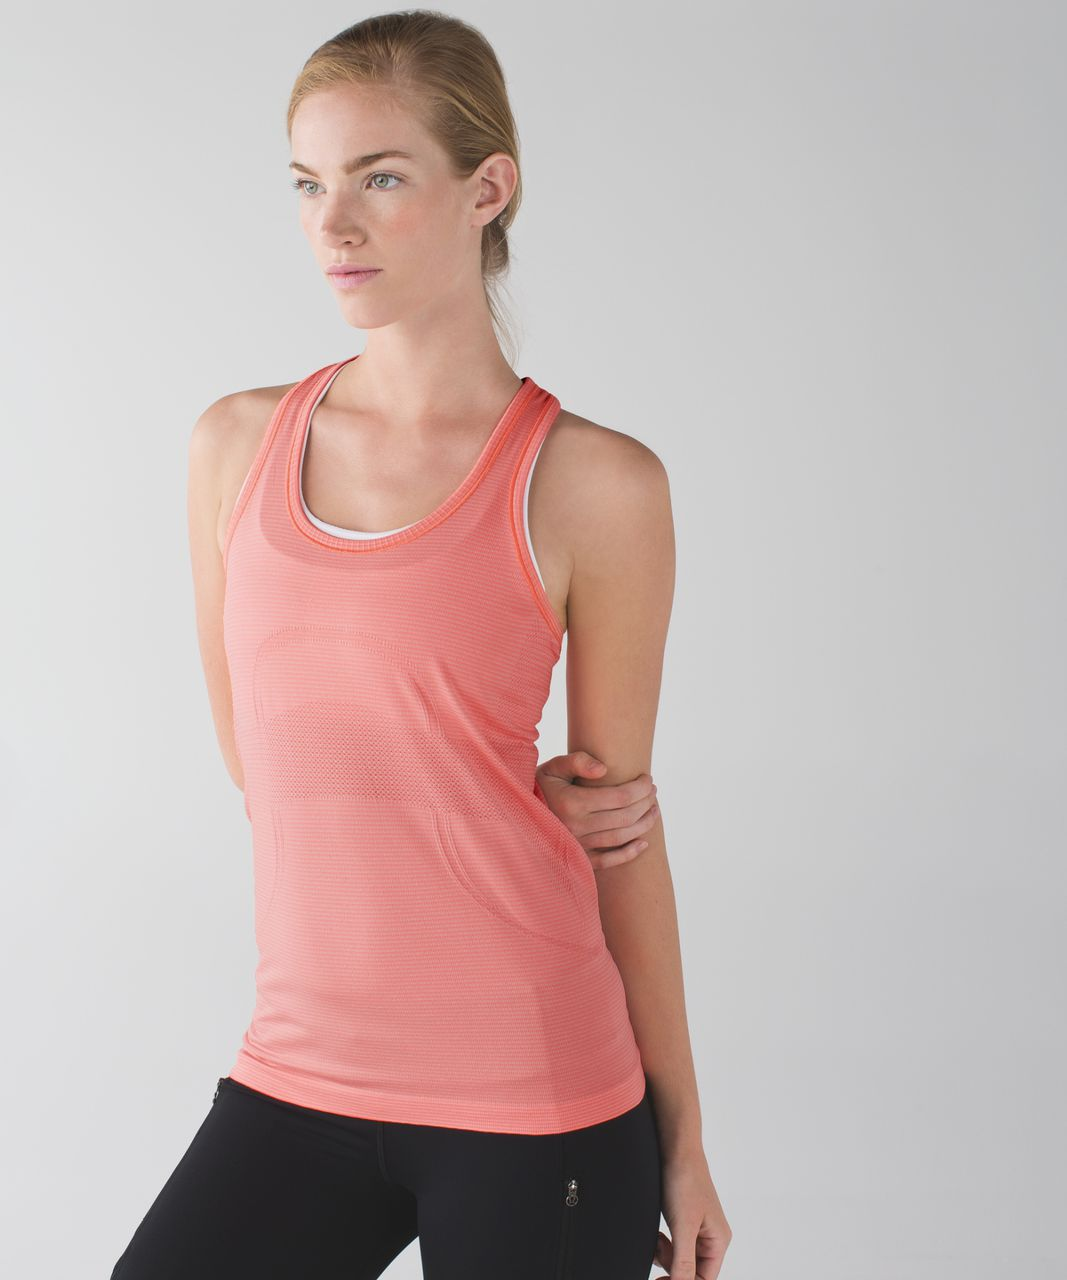 Lululemon Swiftly Tech Racerback - Heathered Grapefruit (First Release)